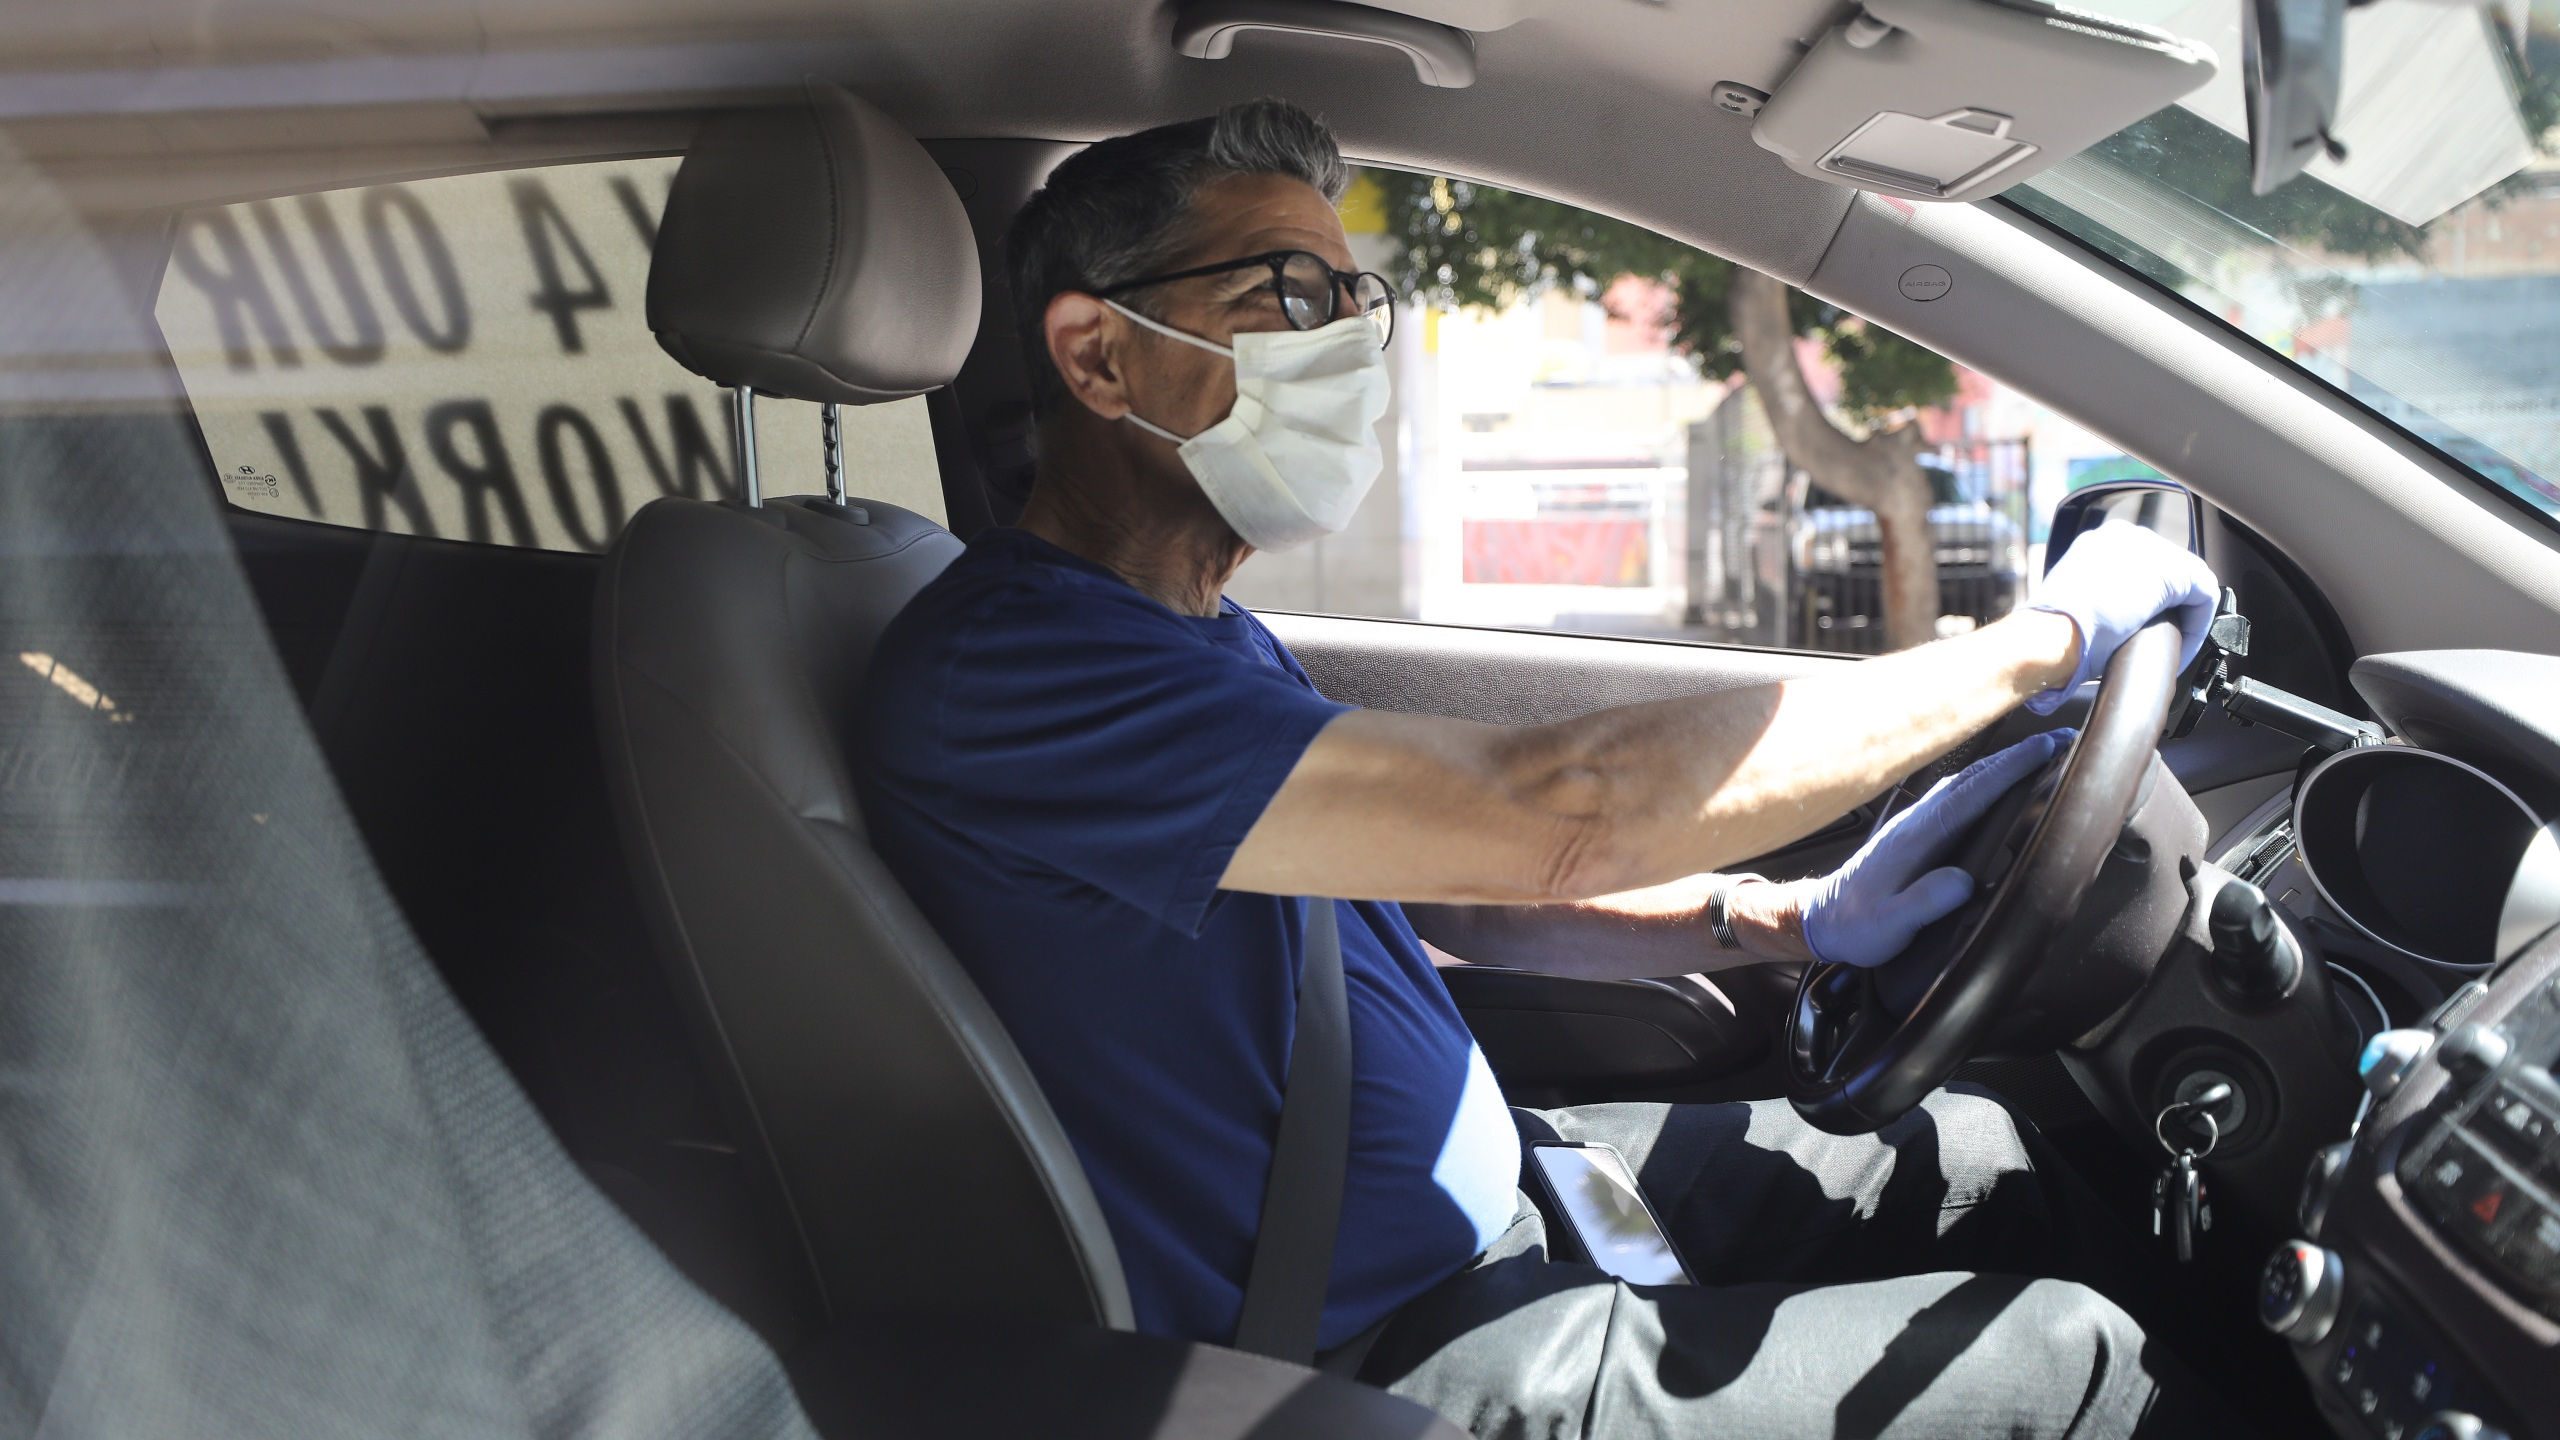 """A driver wears a face mask and gloves as Uber and Lyft drivers with Rideshare Drivers United and the Transport Workers Union of America conduct a """"caravan protest"""" outside the California Labor Commissioner's office in Los Angeles amid the coronavirus pandemic on April 16, 2020. (Mario Tama/Getty Images)"""